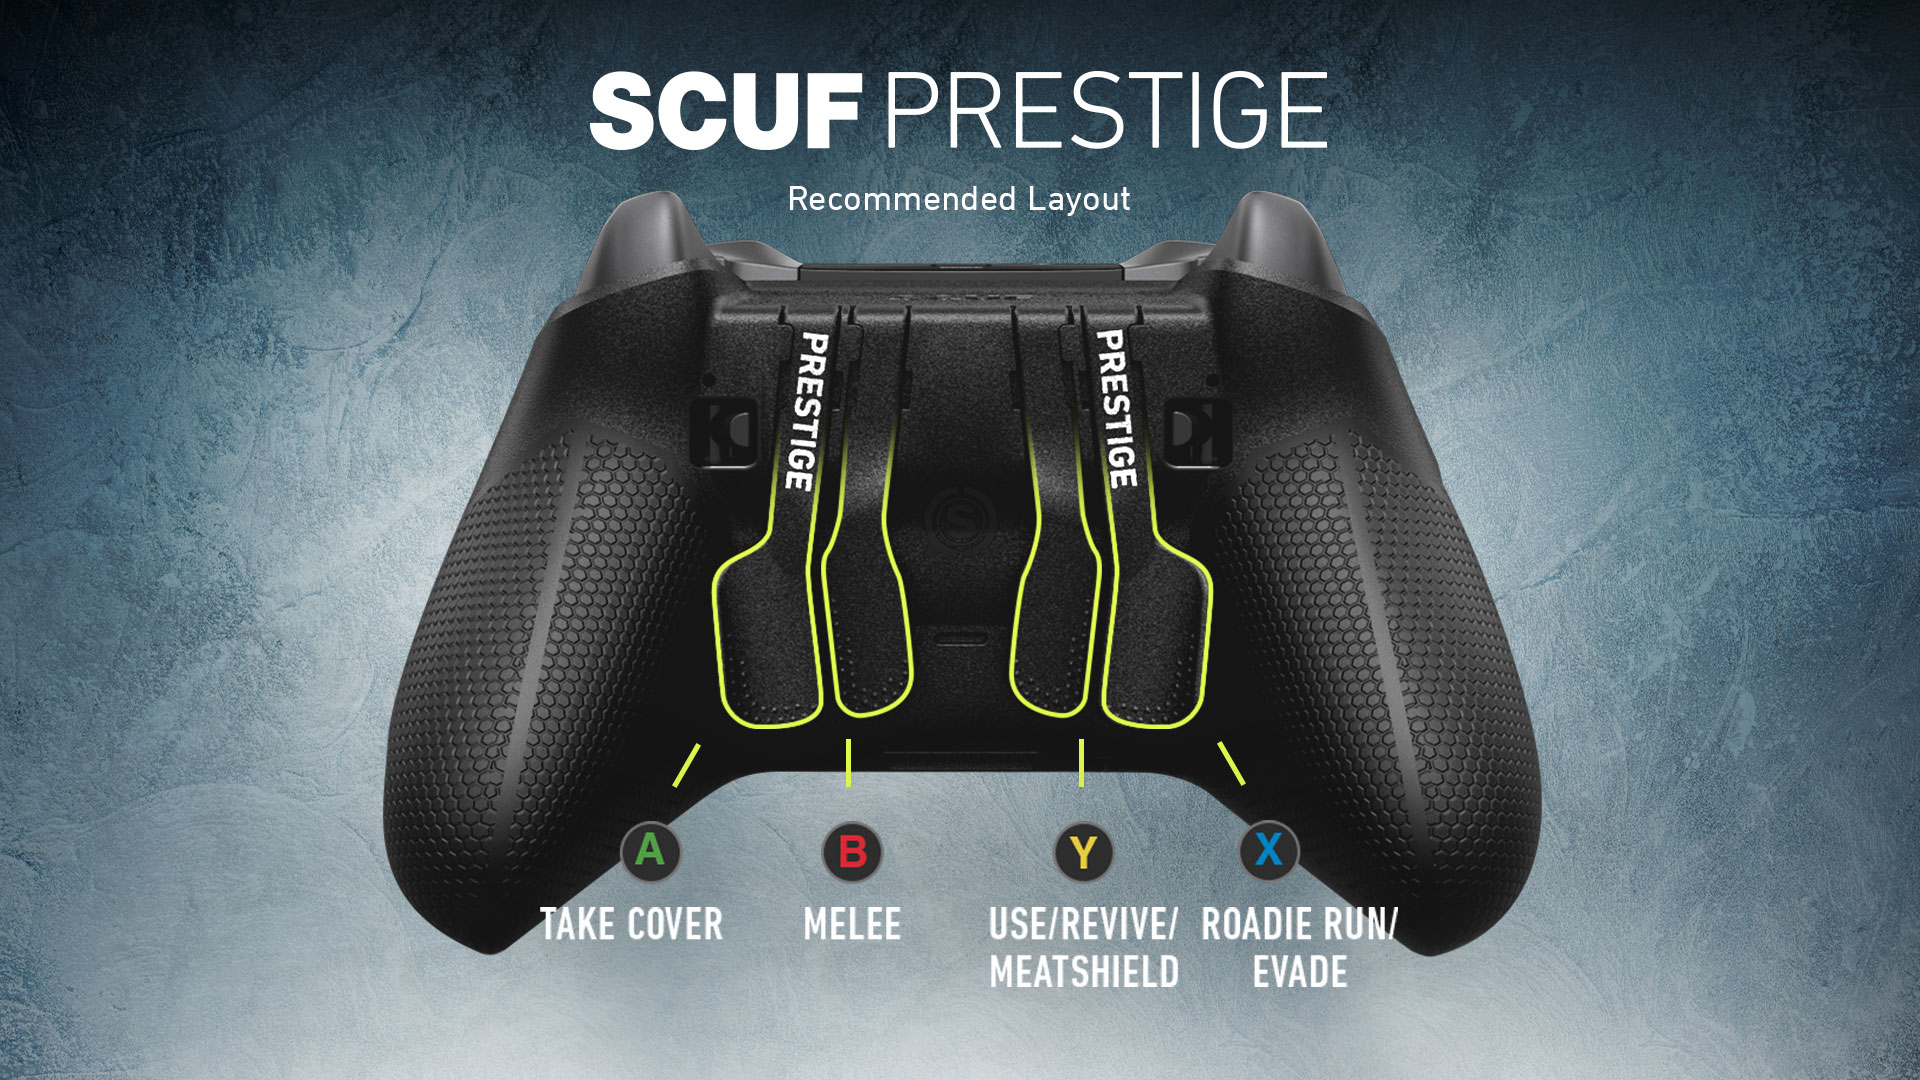 Gears 5 SCUF Prestige Controller Recommended Layout